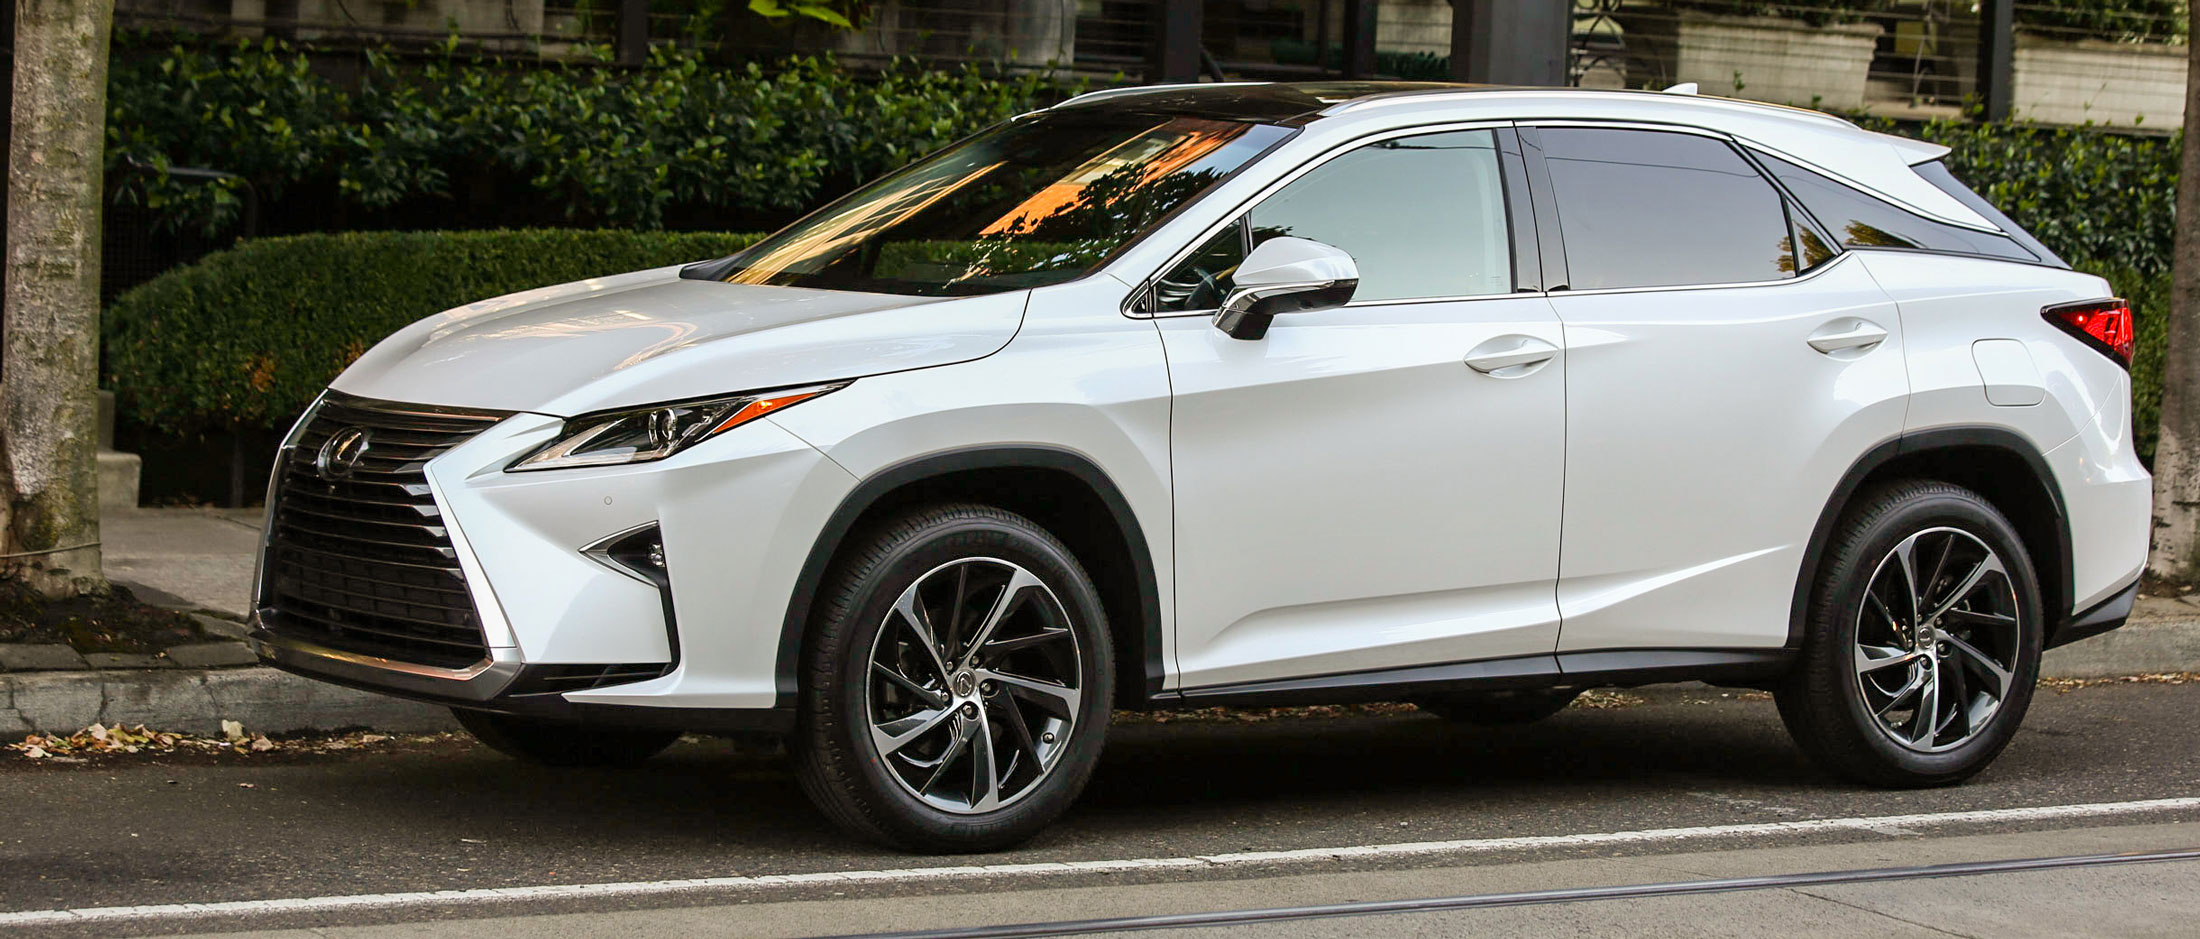 2016 Lexus RX 350 F Sport Review The Ur Crossover Overworked